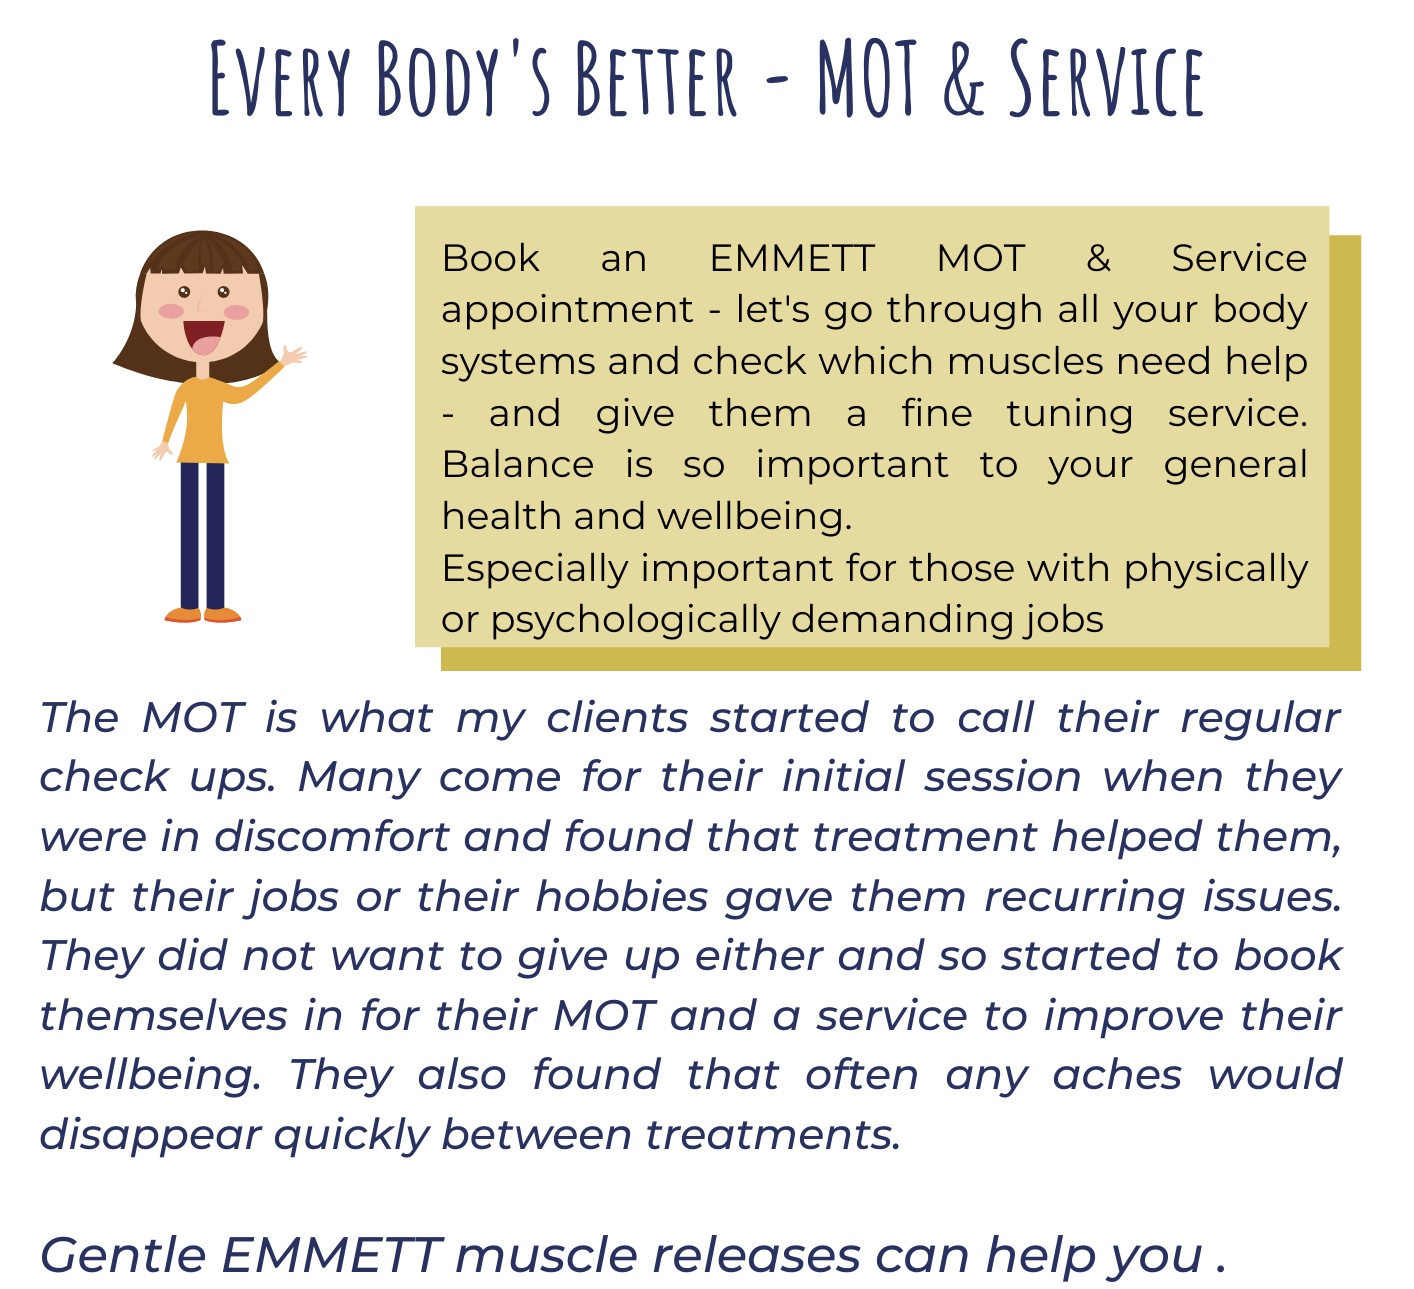 aches and pains - need a body MOT